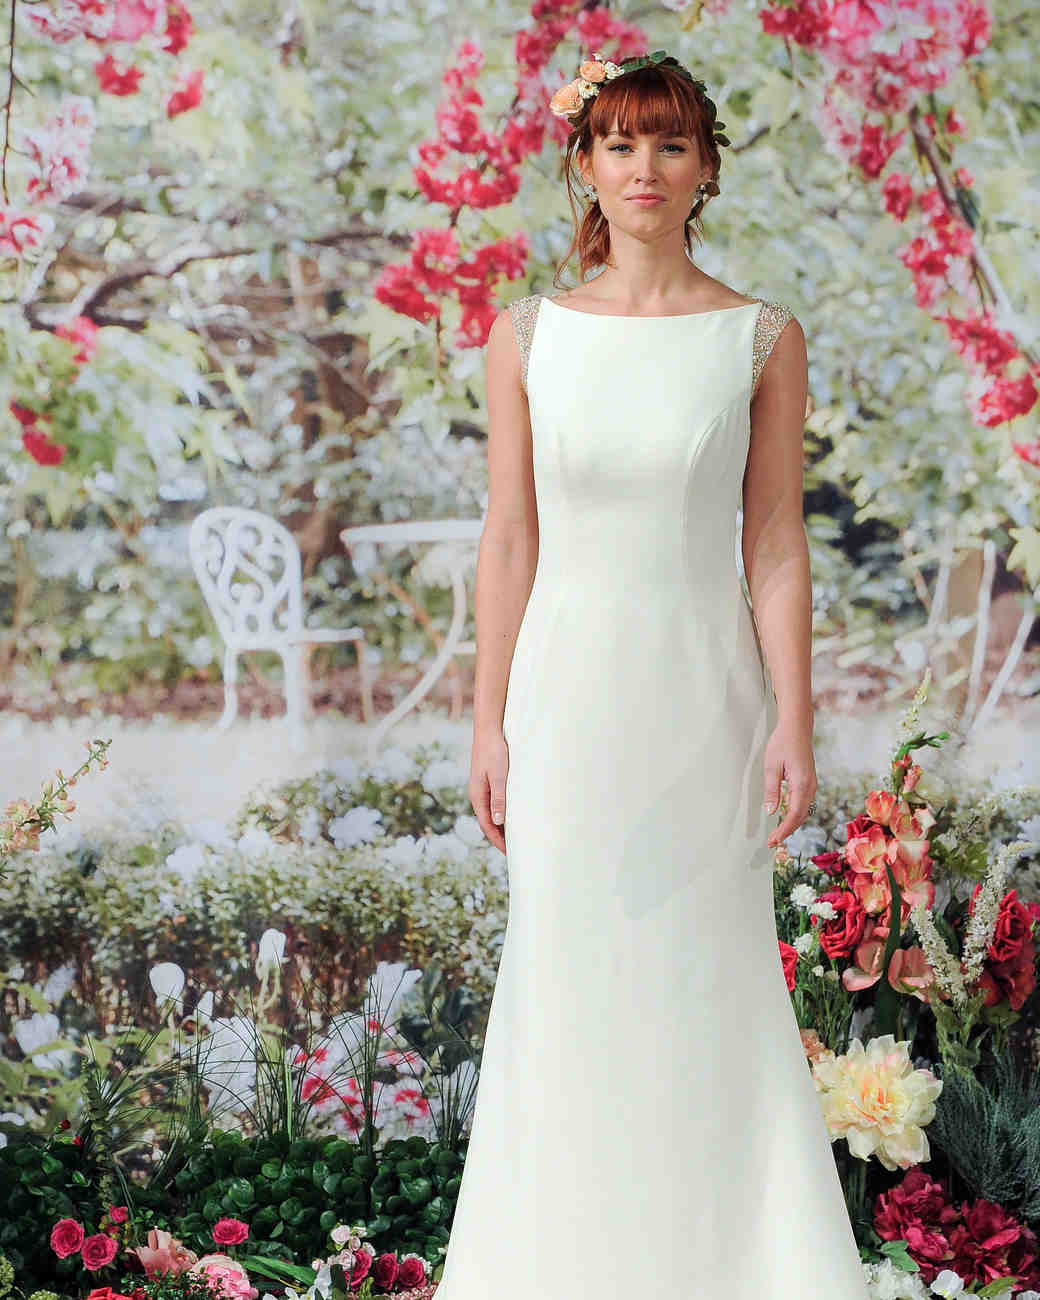 Maggie Sottero Fall 2017 Wedding Dresses: Maggie Sottero Fall 2017 Wedding Dress Collection